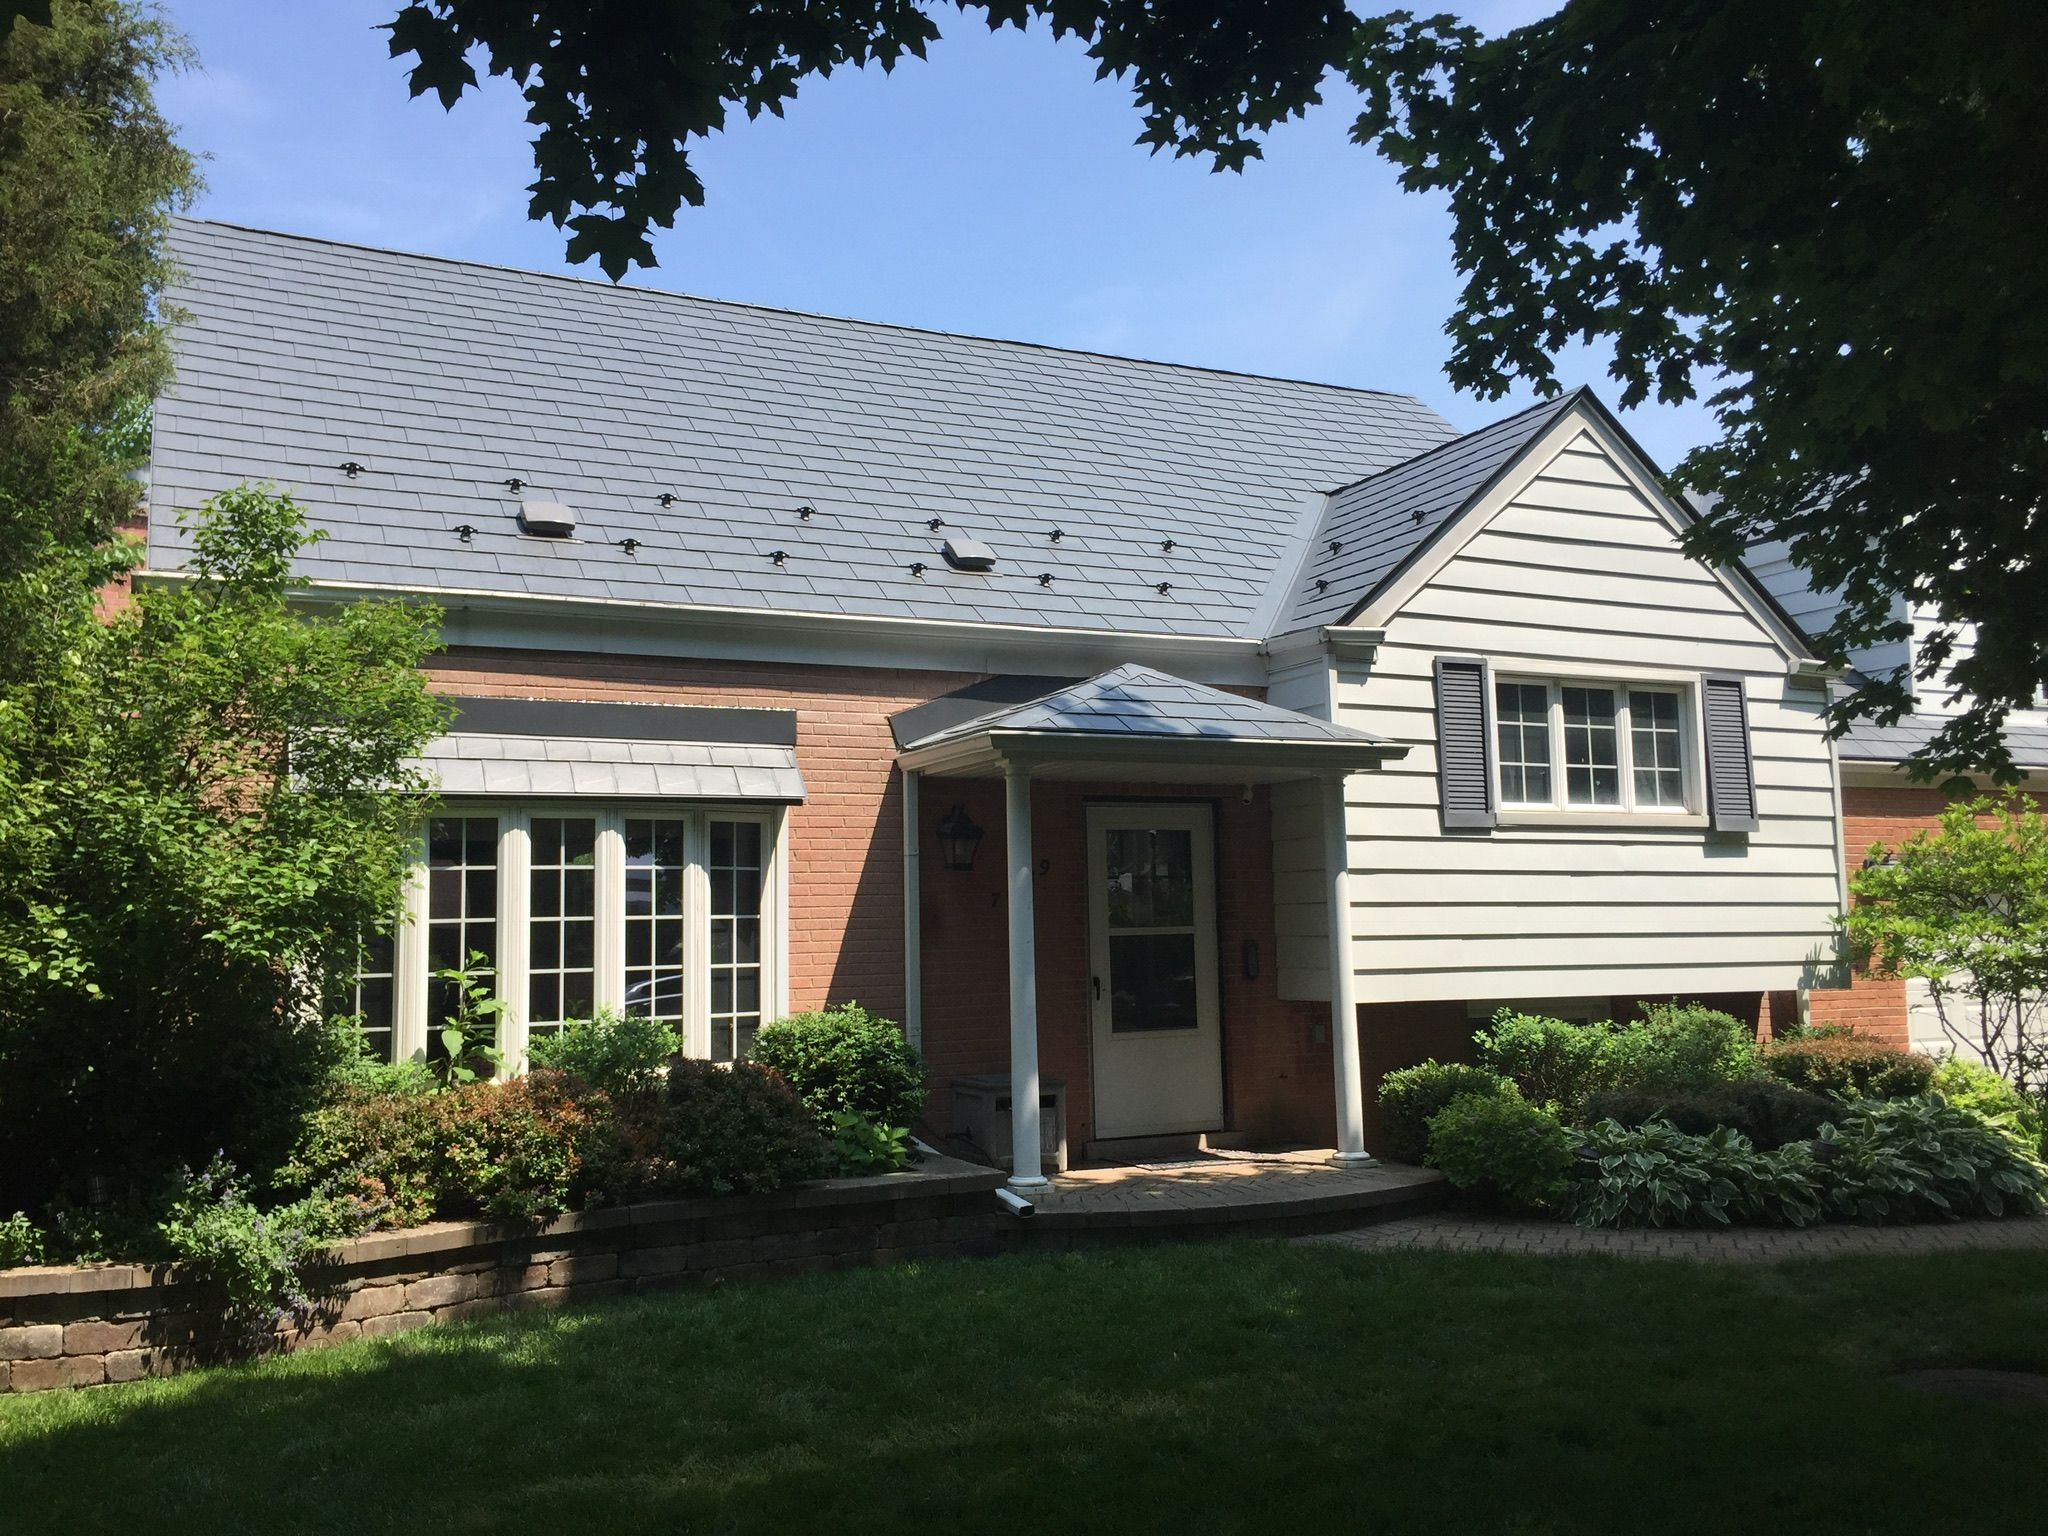 Slate Roofing Metal Roof Dream House Exterior House Roof